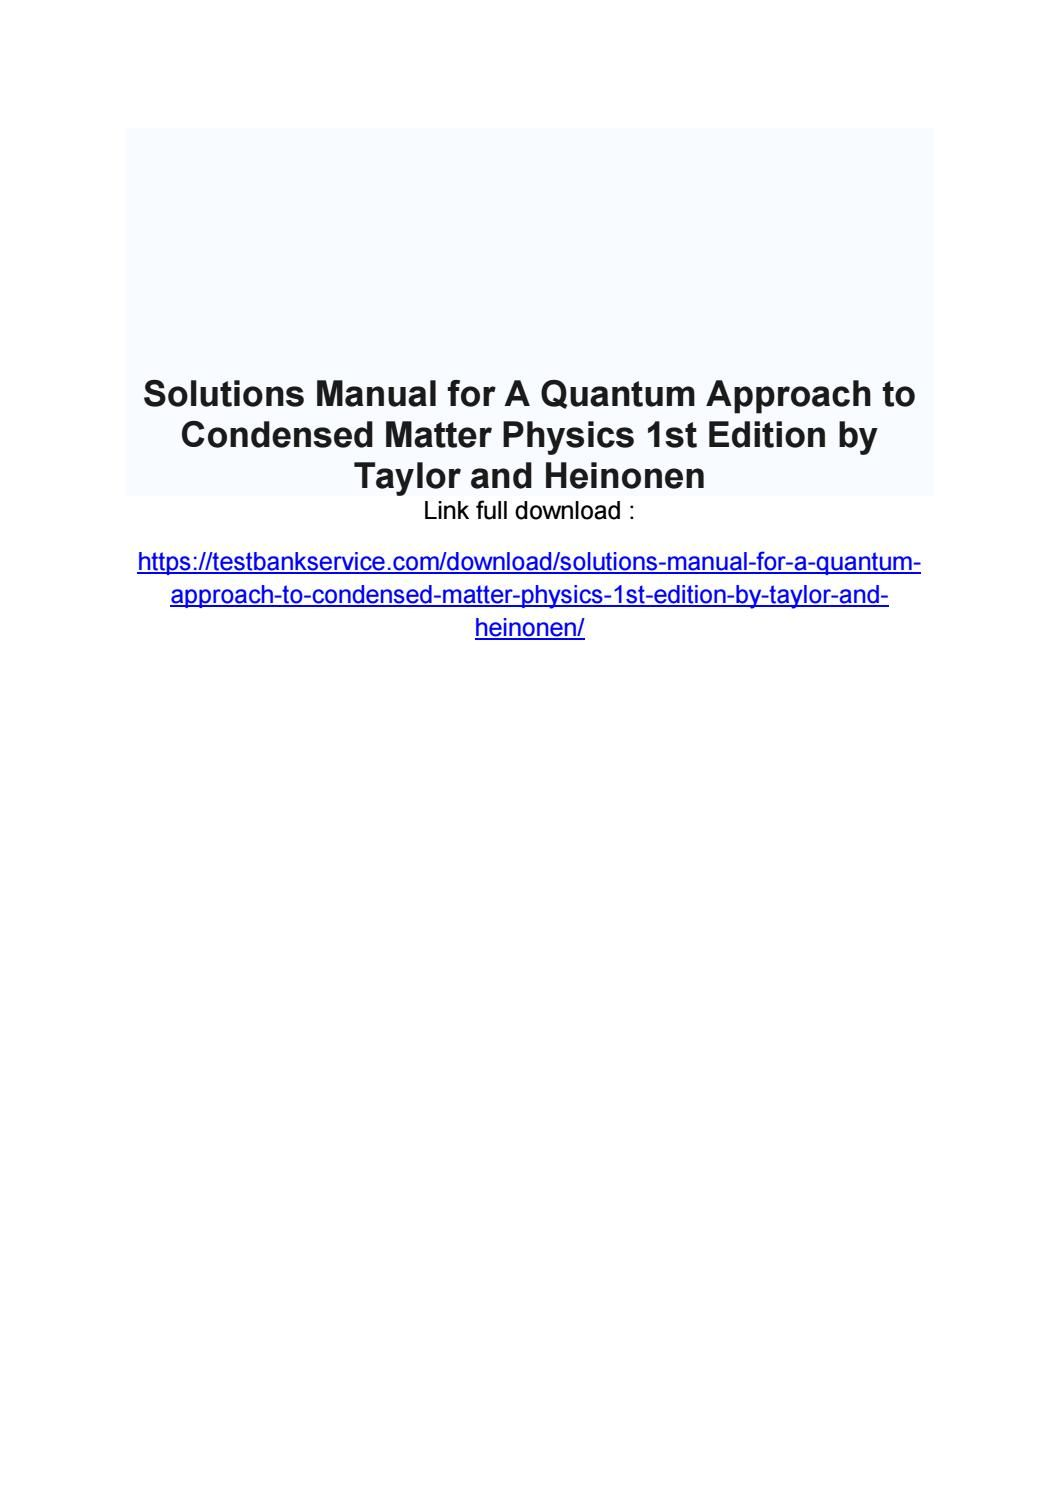 A quantum approach to condensed matter physics 1st edition by taylor and  heinonen solution